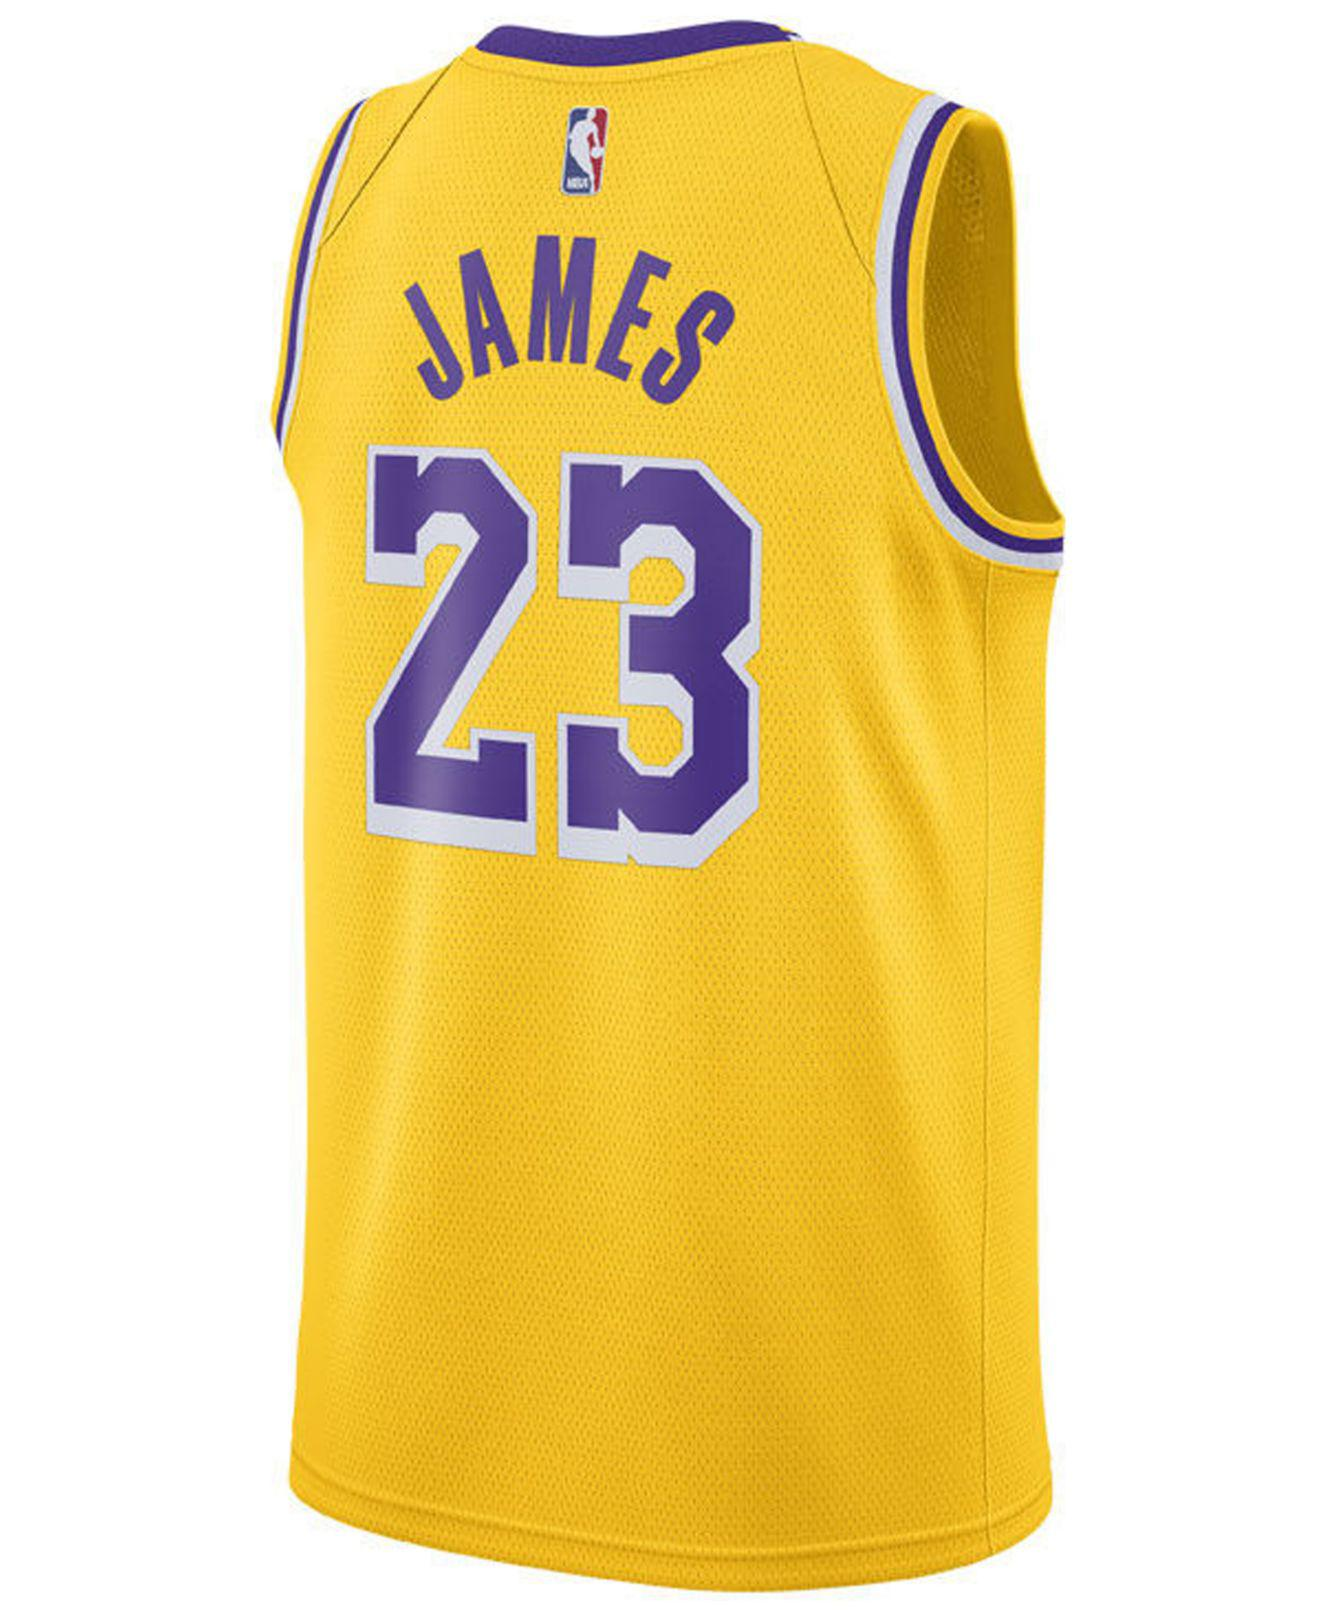 495cdcb77 Lyst - Nike Lebron James Icon Edition Swingman (los Angeles Lakers) Nba  Connected Jersey in Yellow for Men